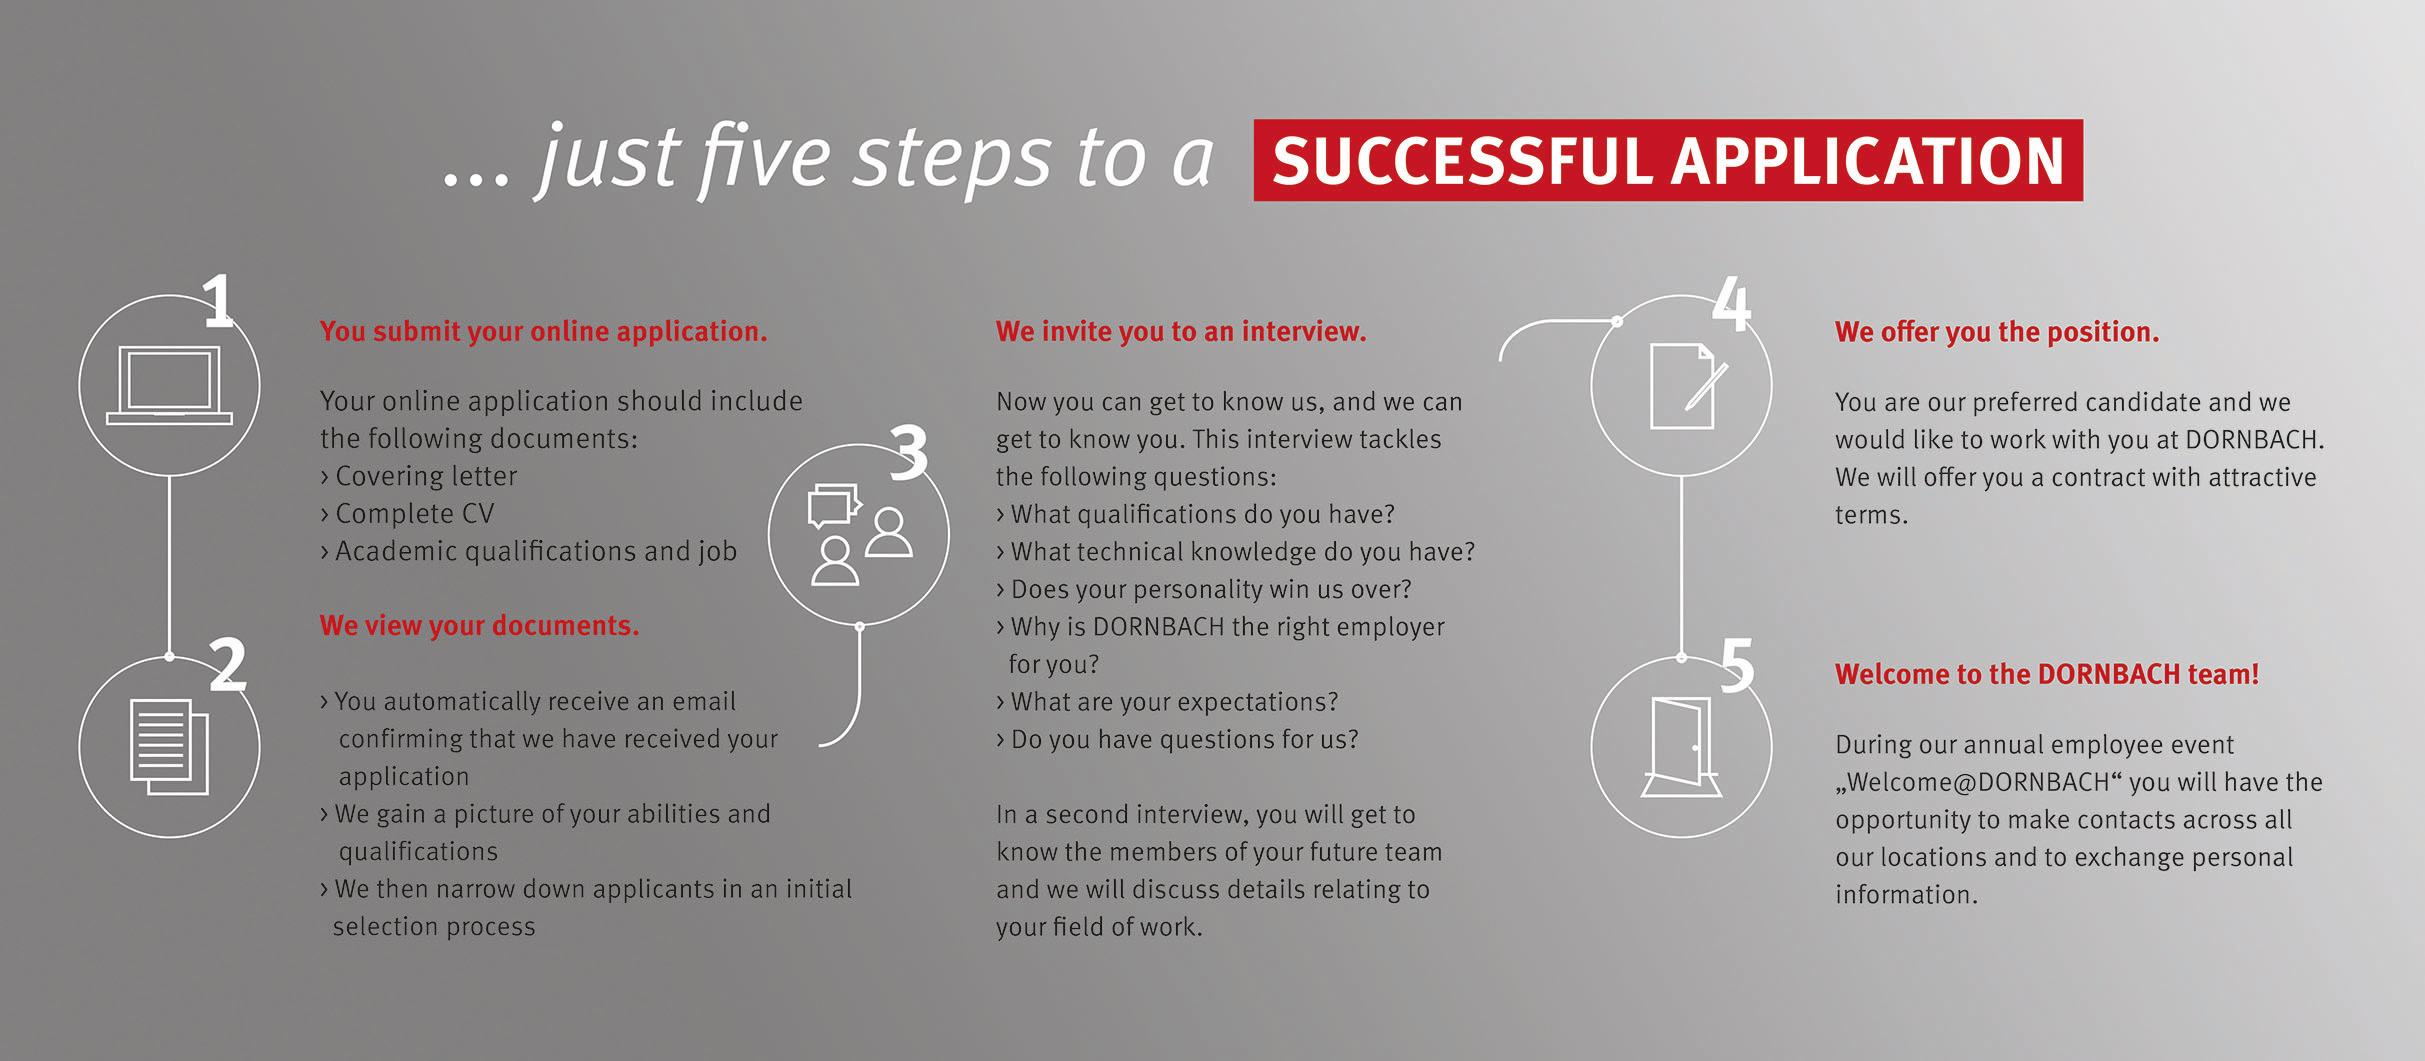 5 steps to a successful application